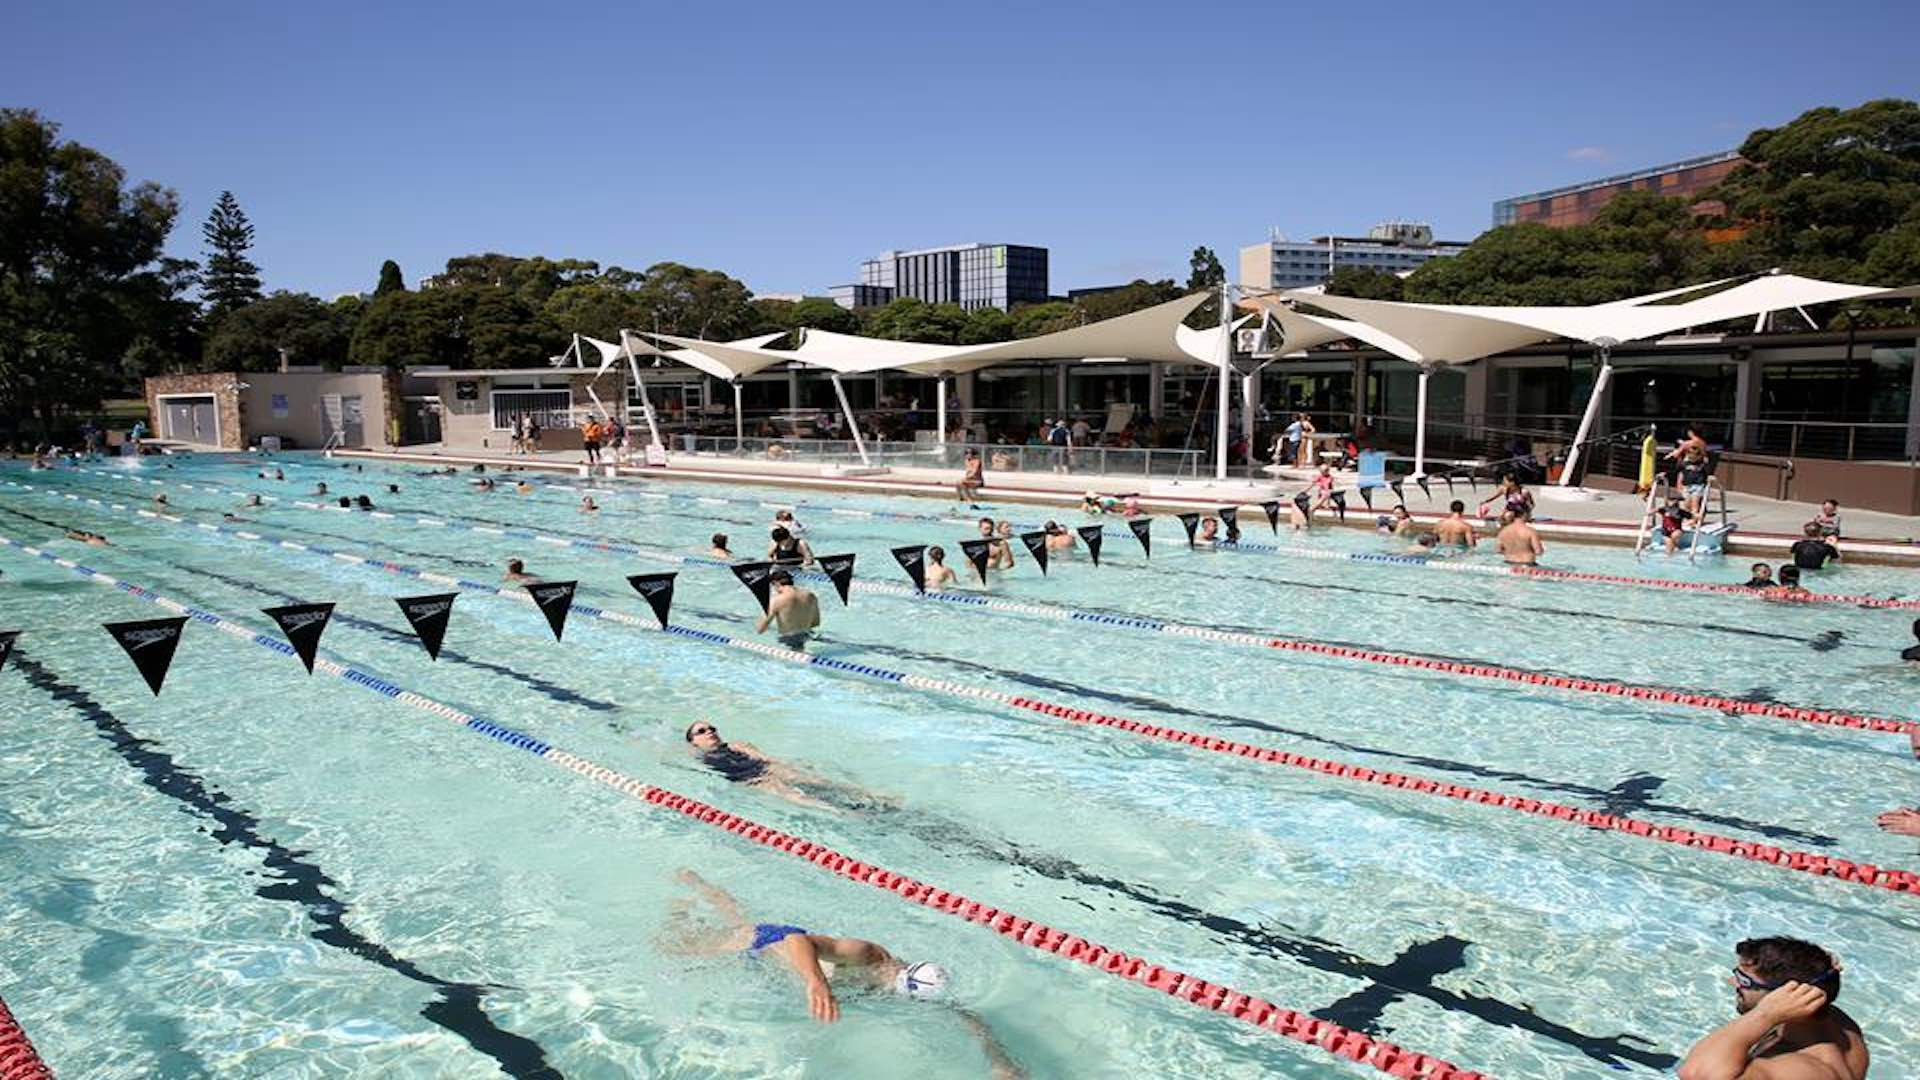 Sydney 39 s best heated pools for a wintertime dip concrete playground concrete playground sydney for North sydney pool swimming lessons